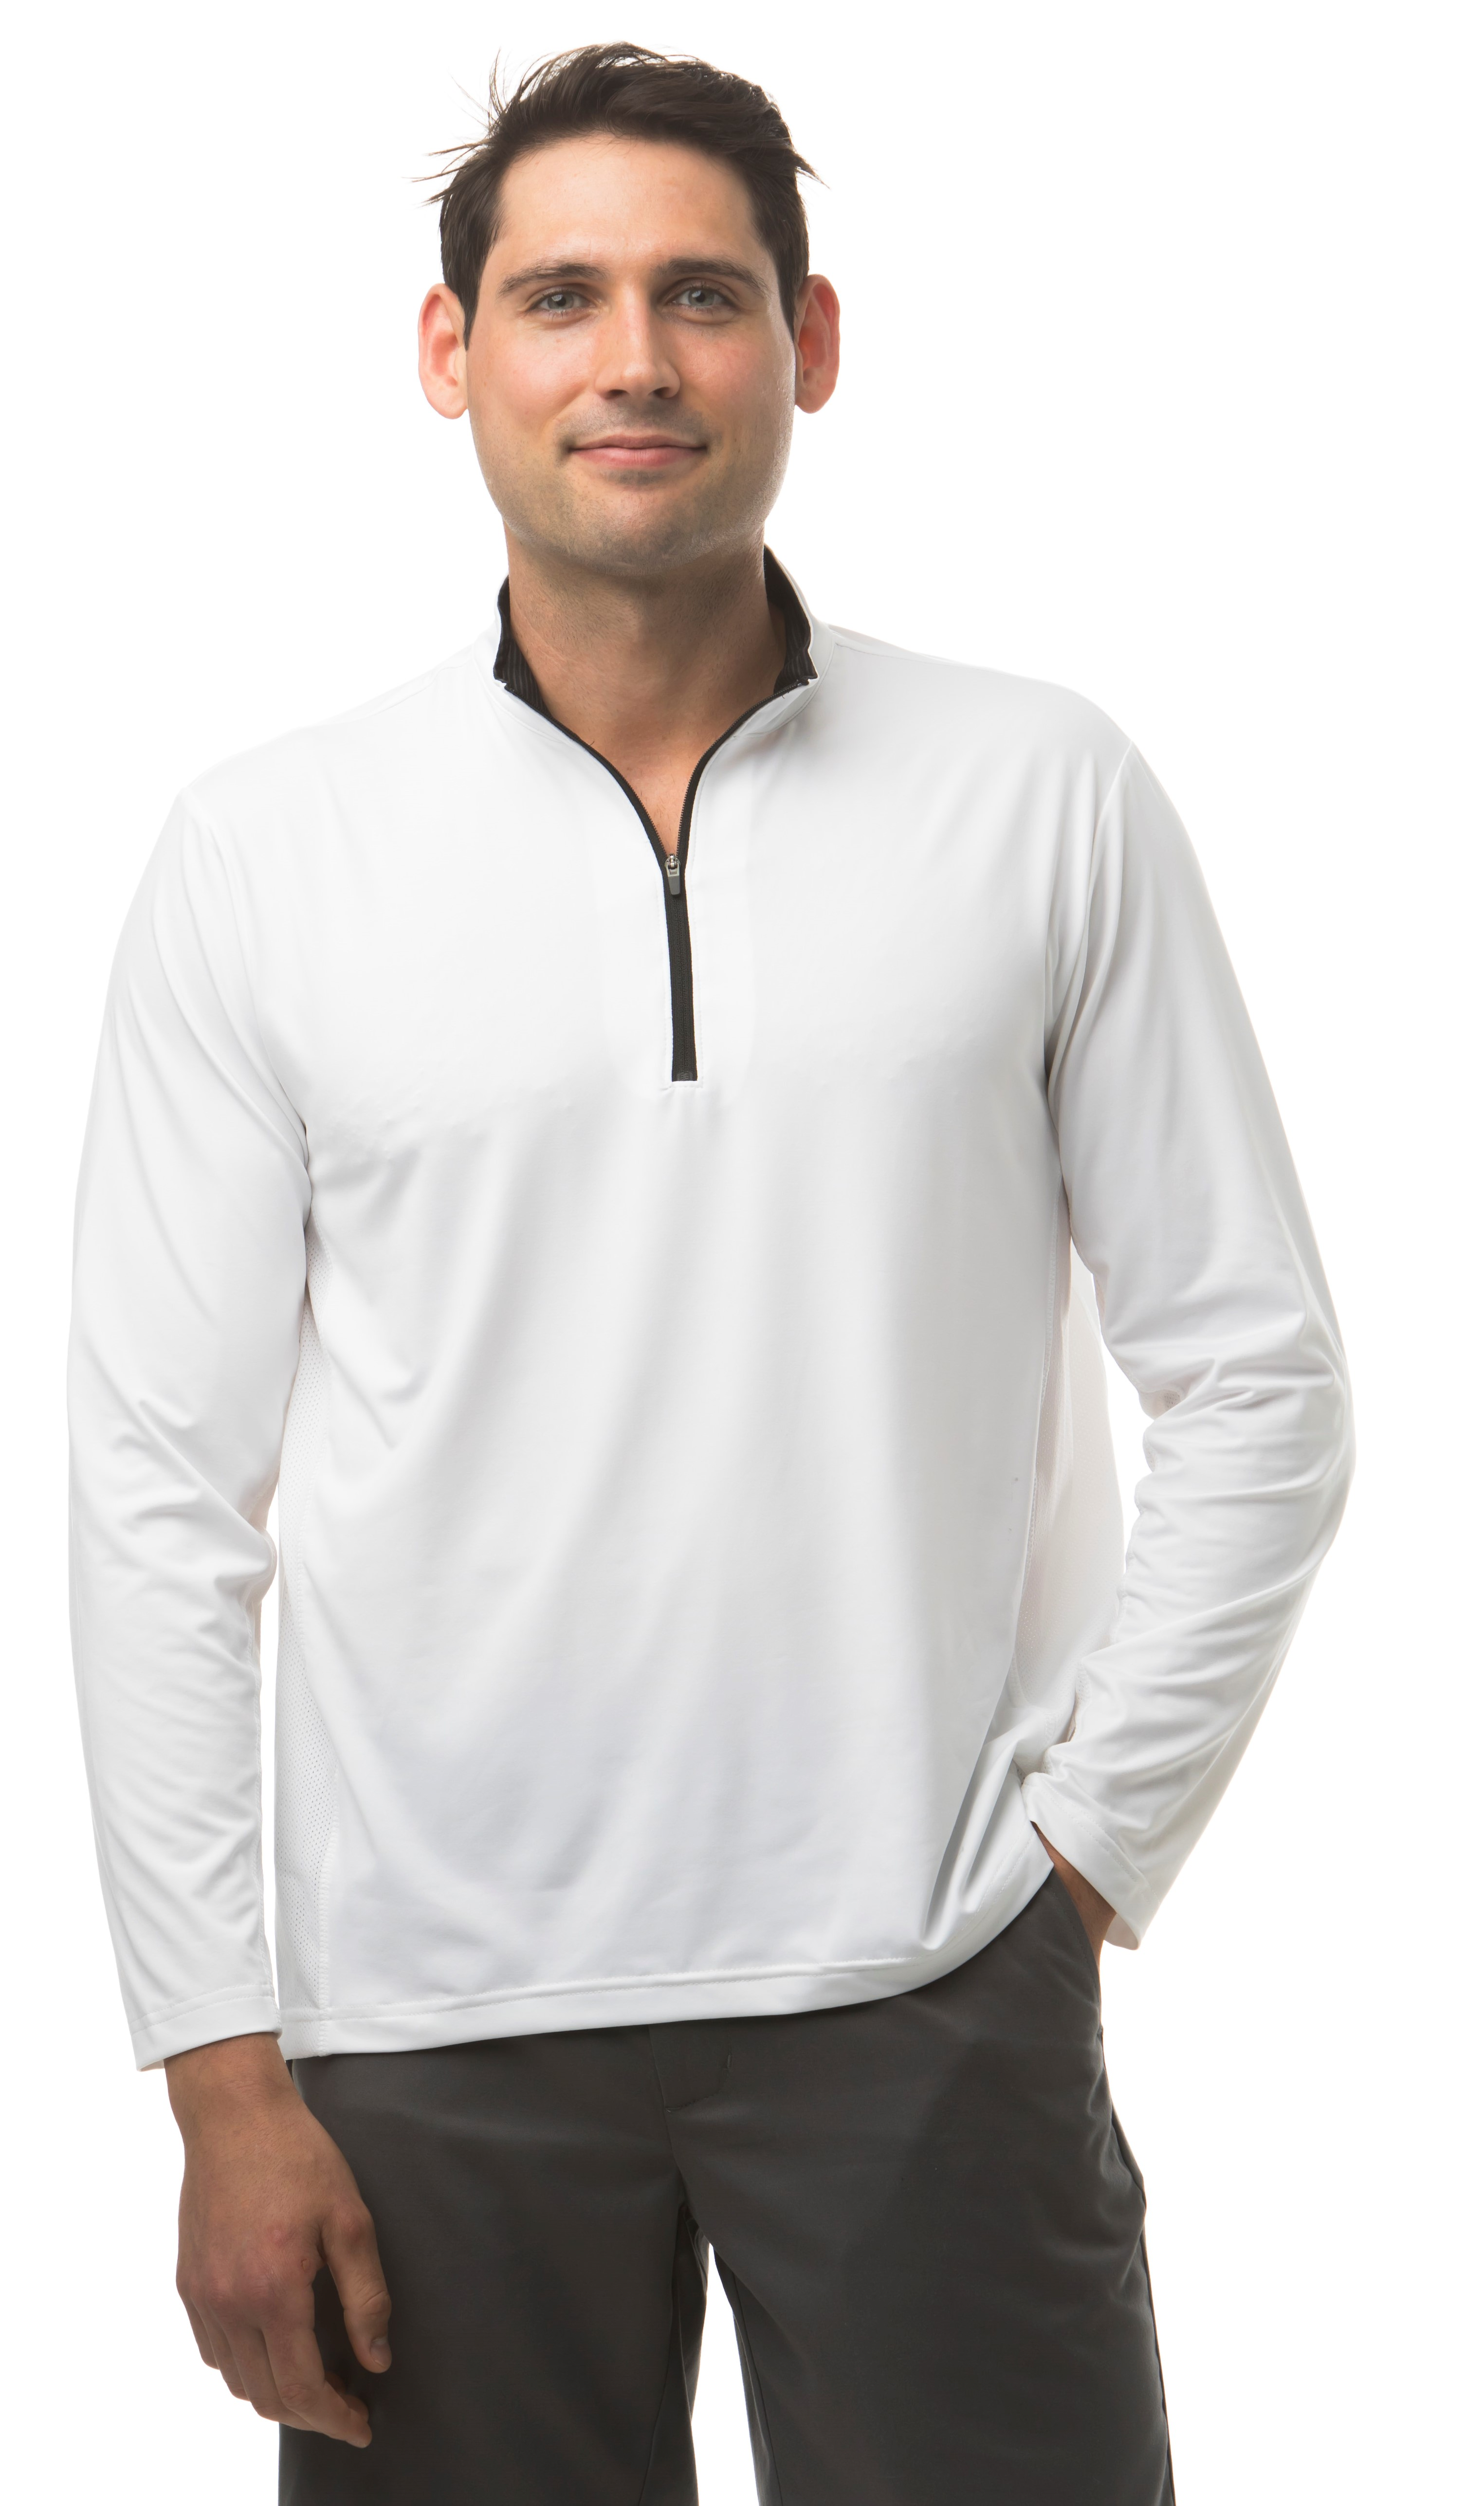 900821 SanSoleil Men's Solcool Long Sleeve Zip Mock With Mesh-White w/Black-Grey Stripe Collar Treatment